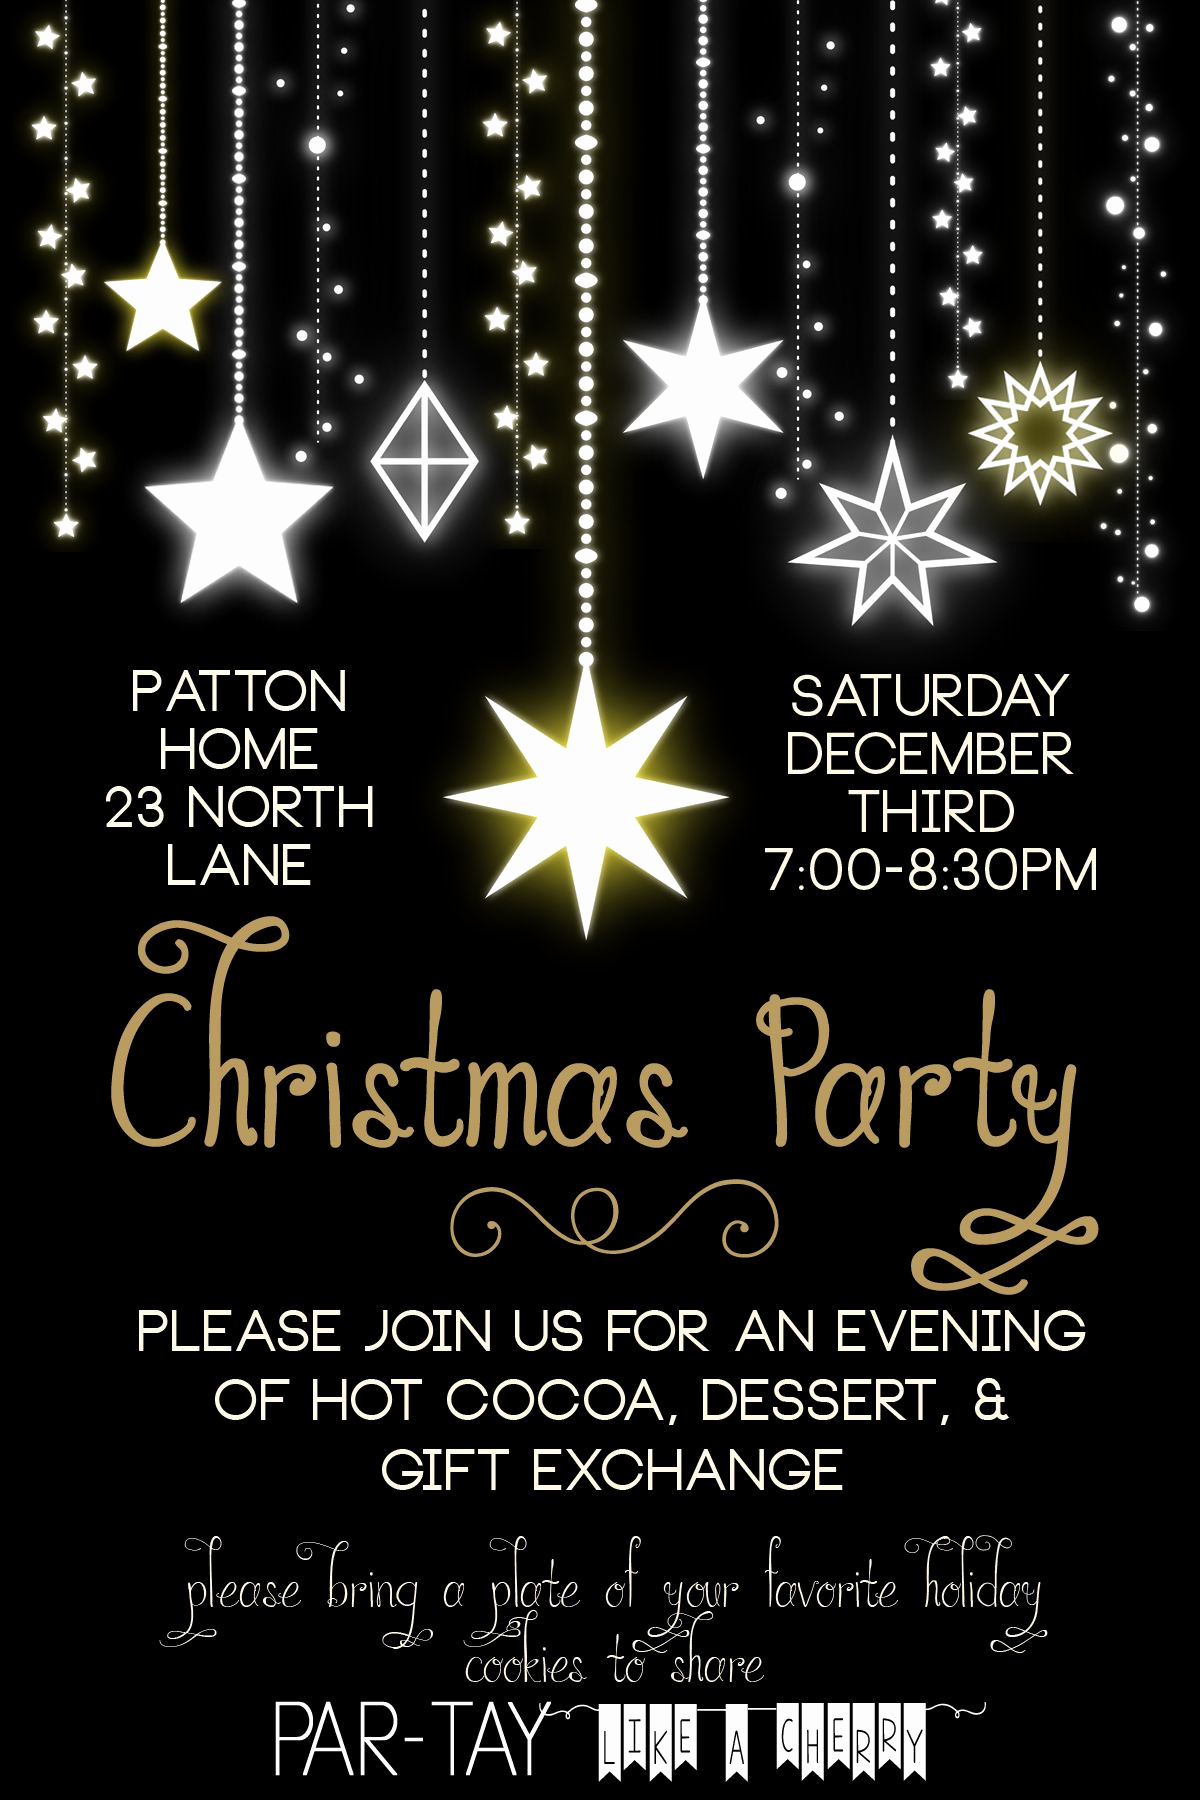 Work Christmas Party Invitation New Free Christmas Party Invitation Christmas